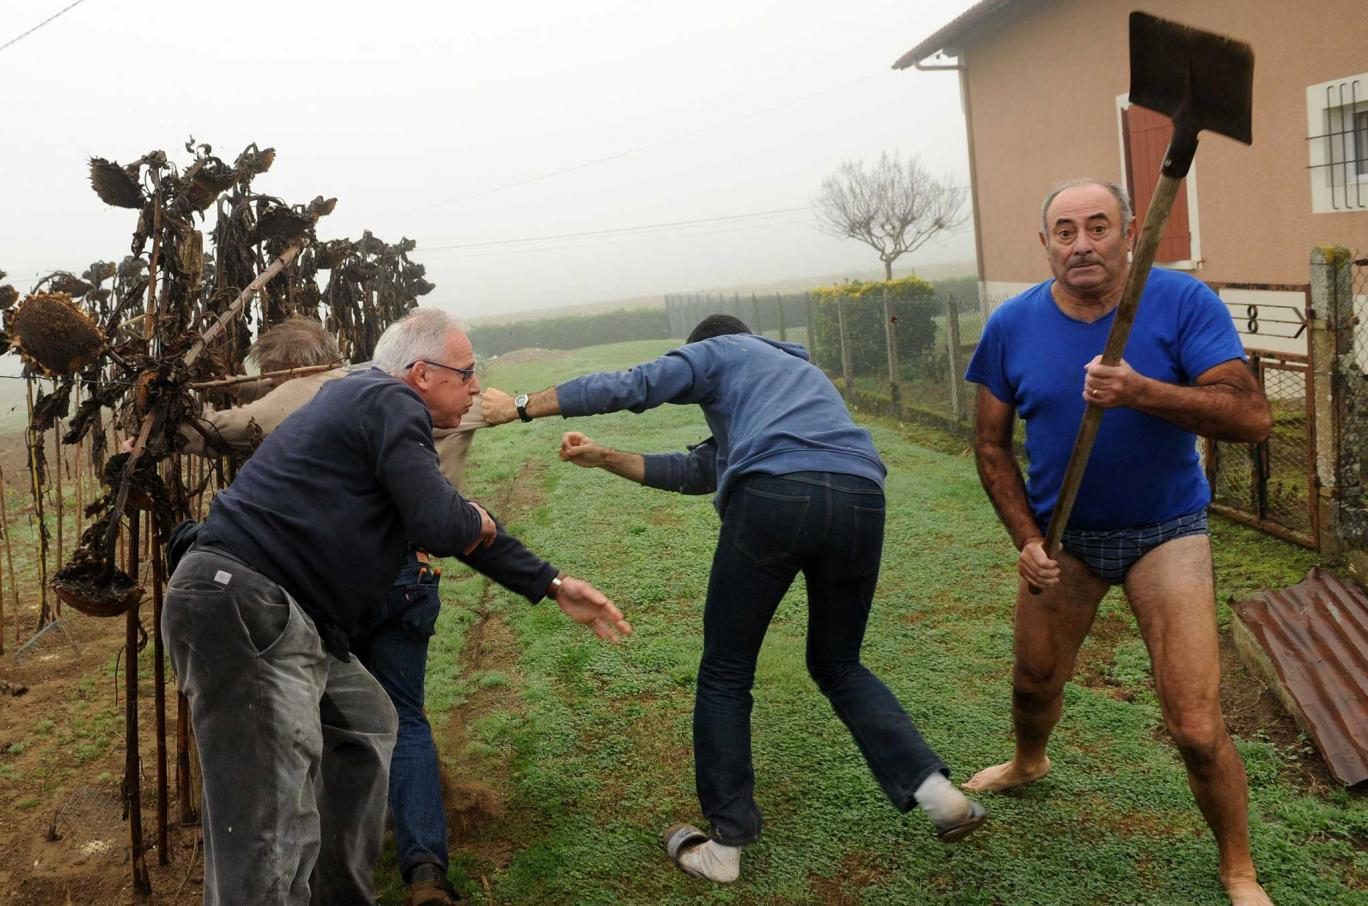 UNILAD getty36399 Man In Pants Who Attacked Journalists With Shovel Gets Photoshop Treatment